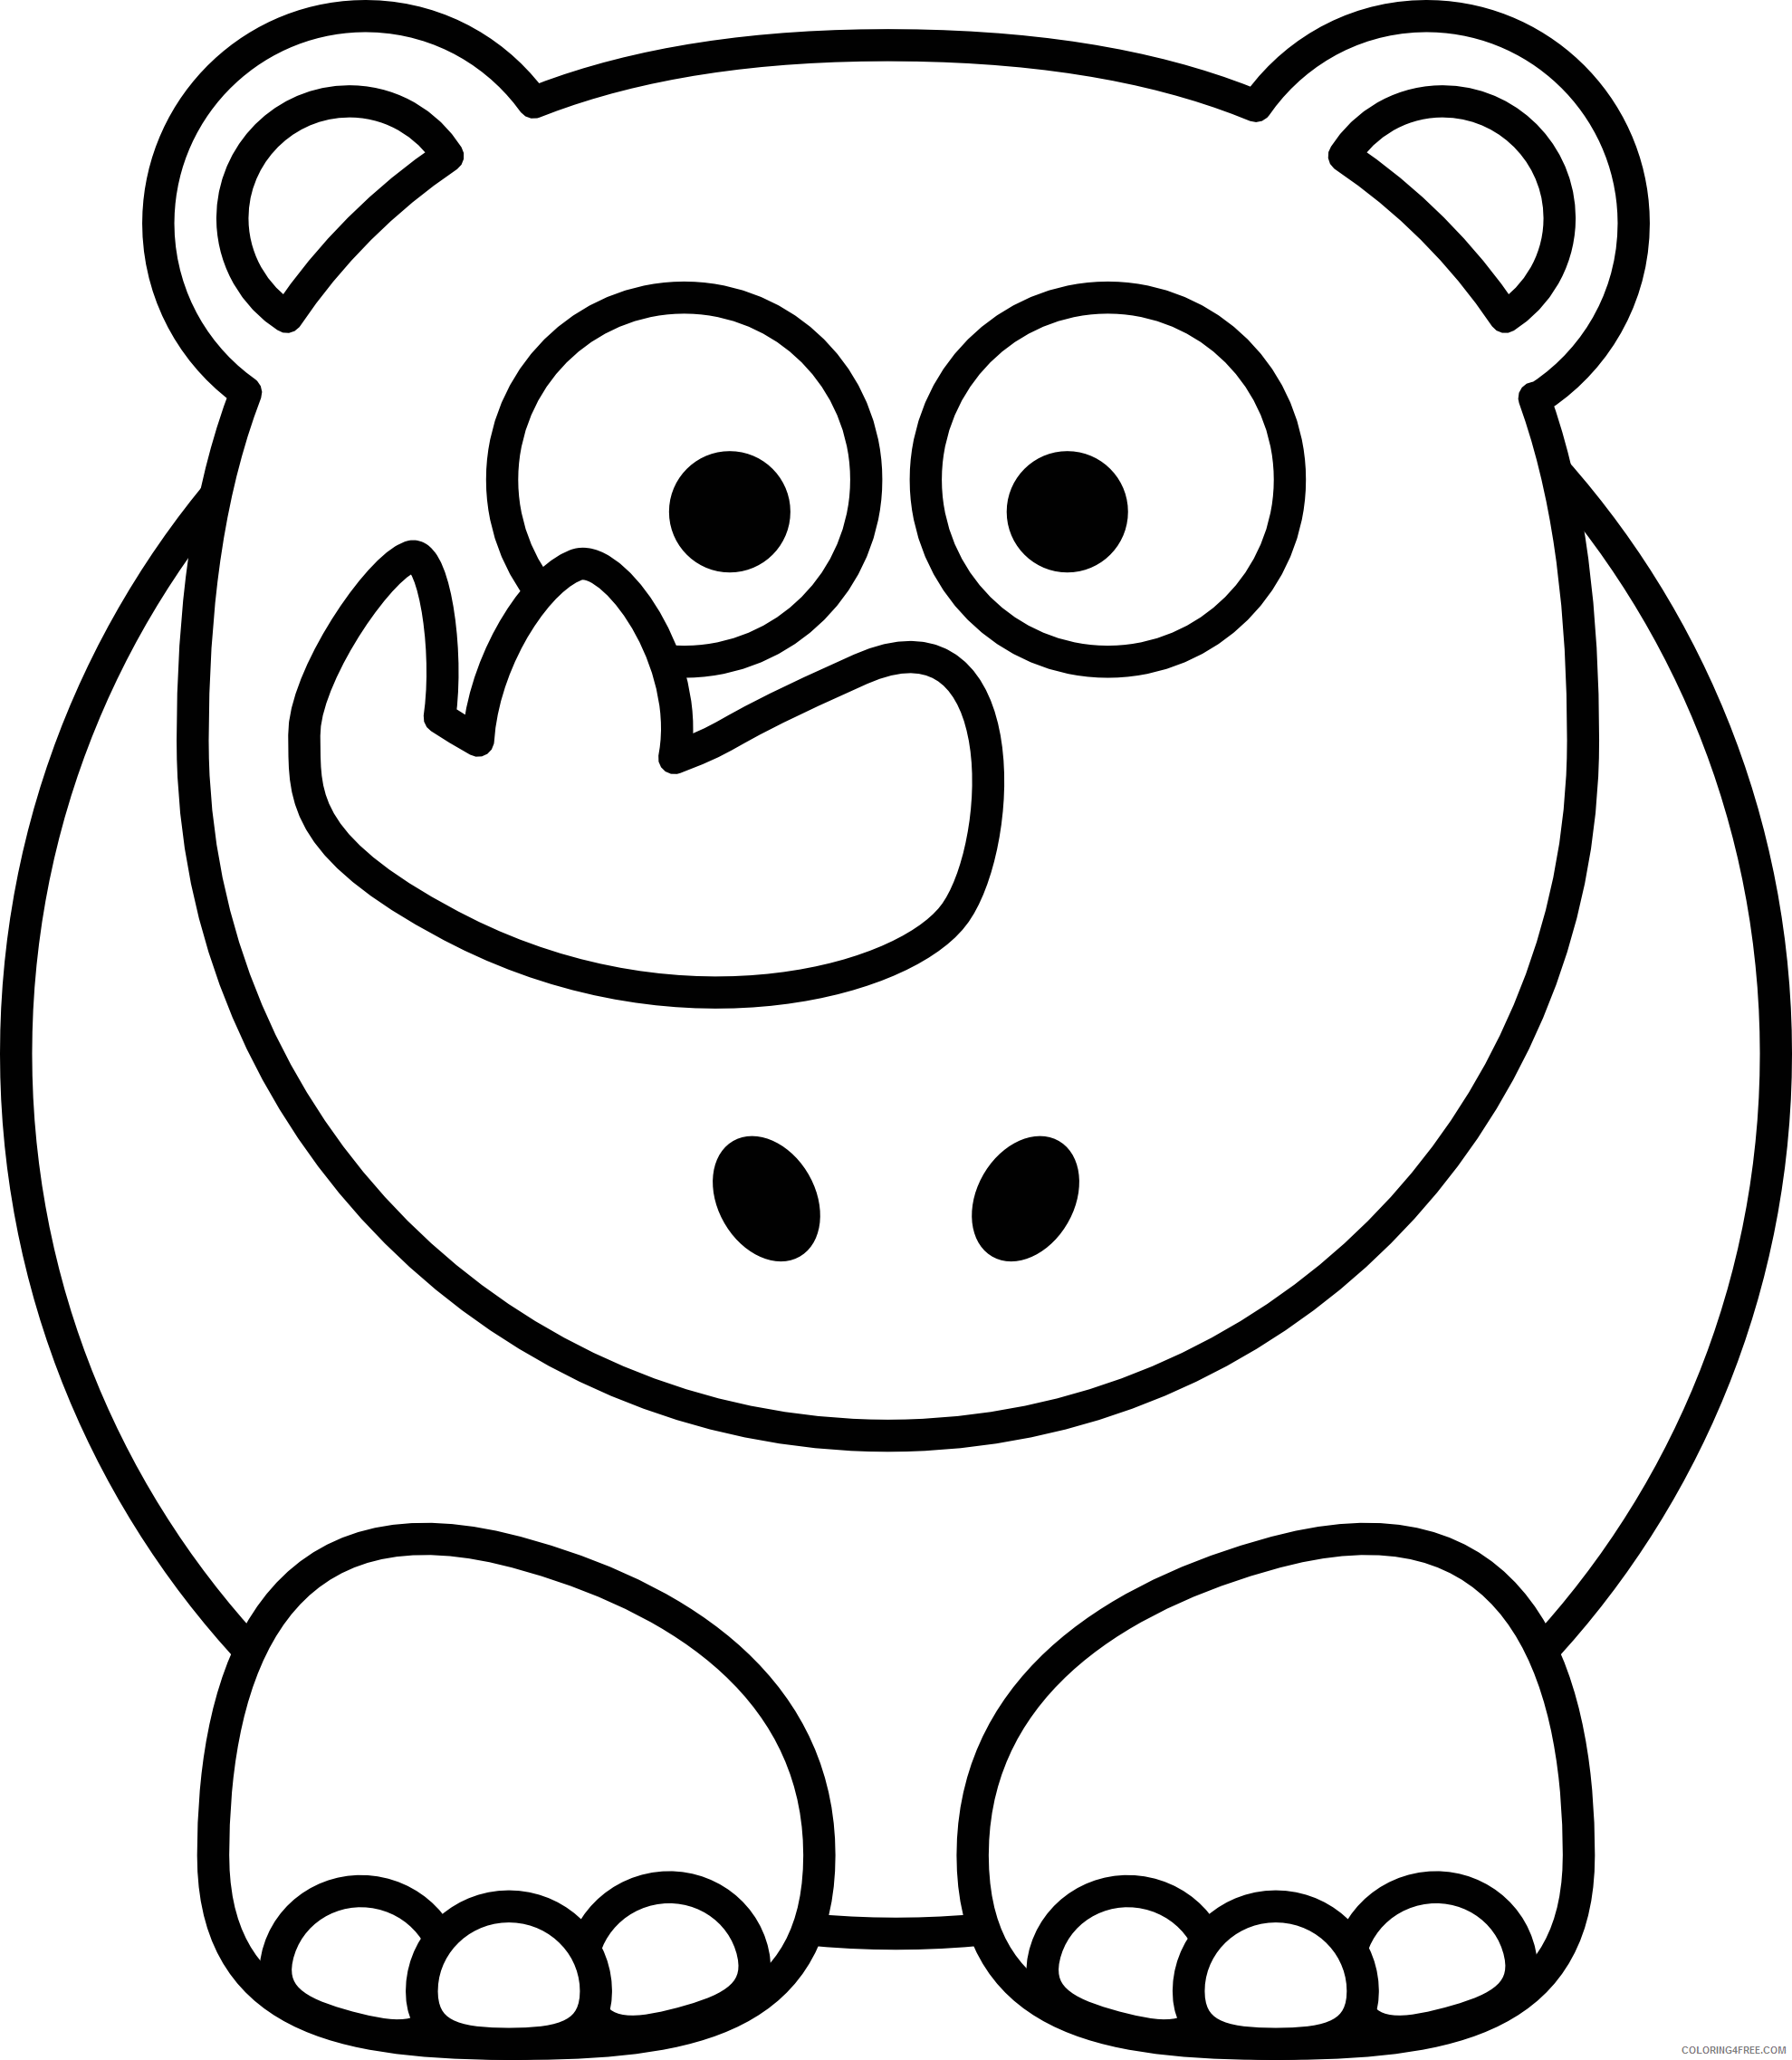 Quality Black and White Animals Coloring Pages animal 18 png Printable Coloring4free